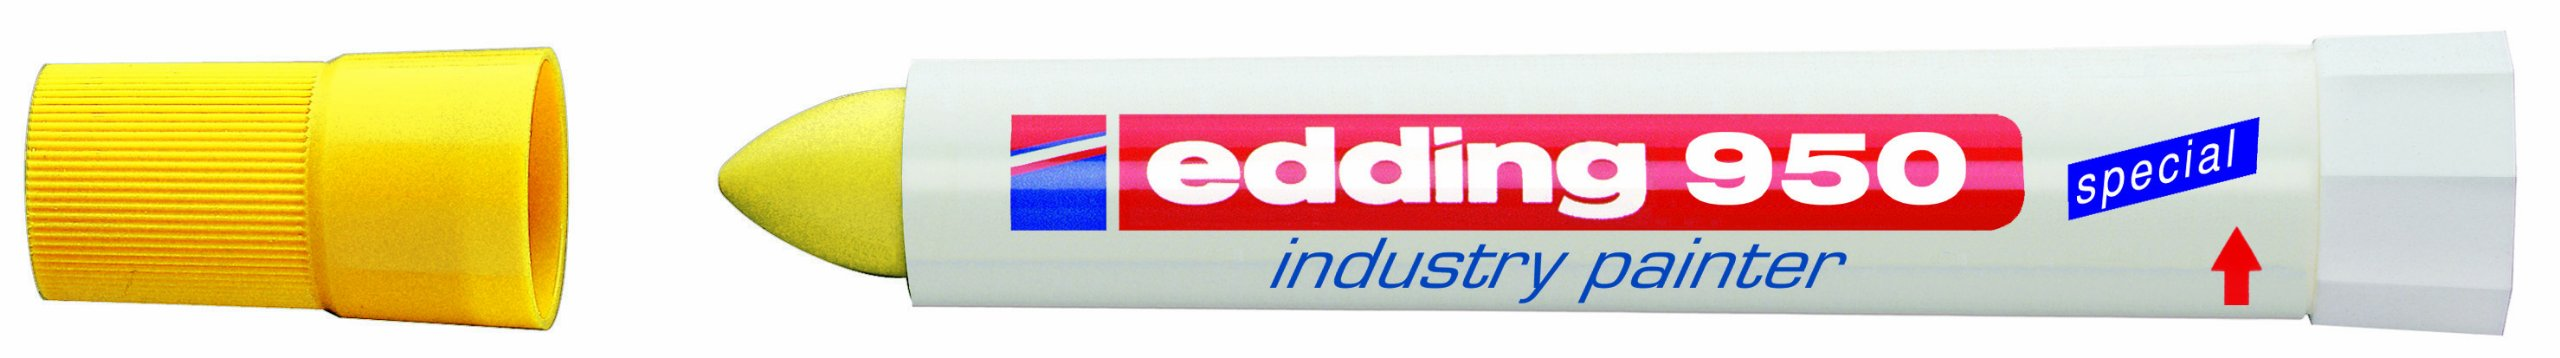 EDDING INDUSTRY PAINTER YELLOW 950-005 by Edding (Image #1)